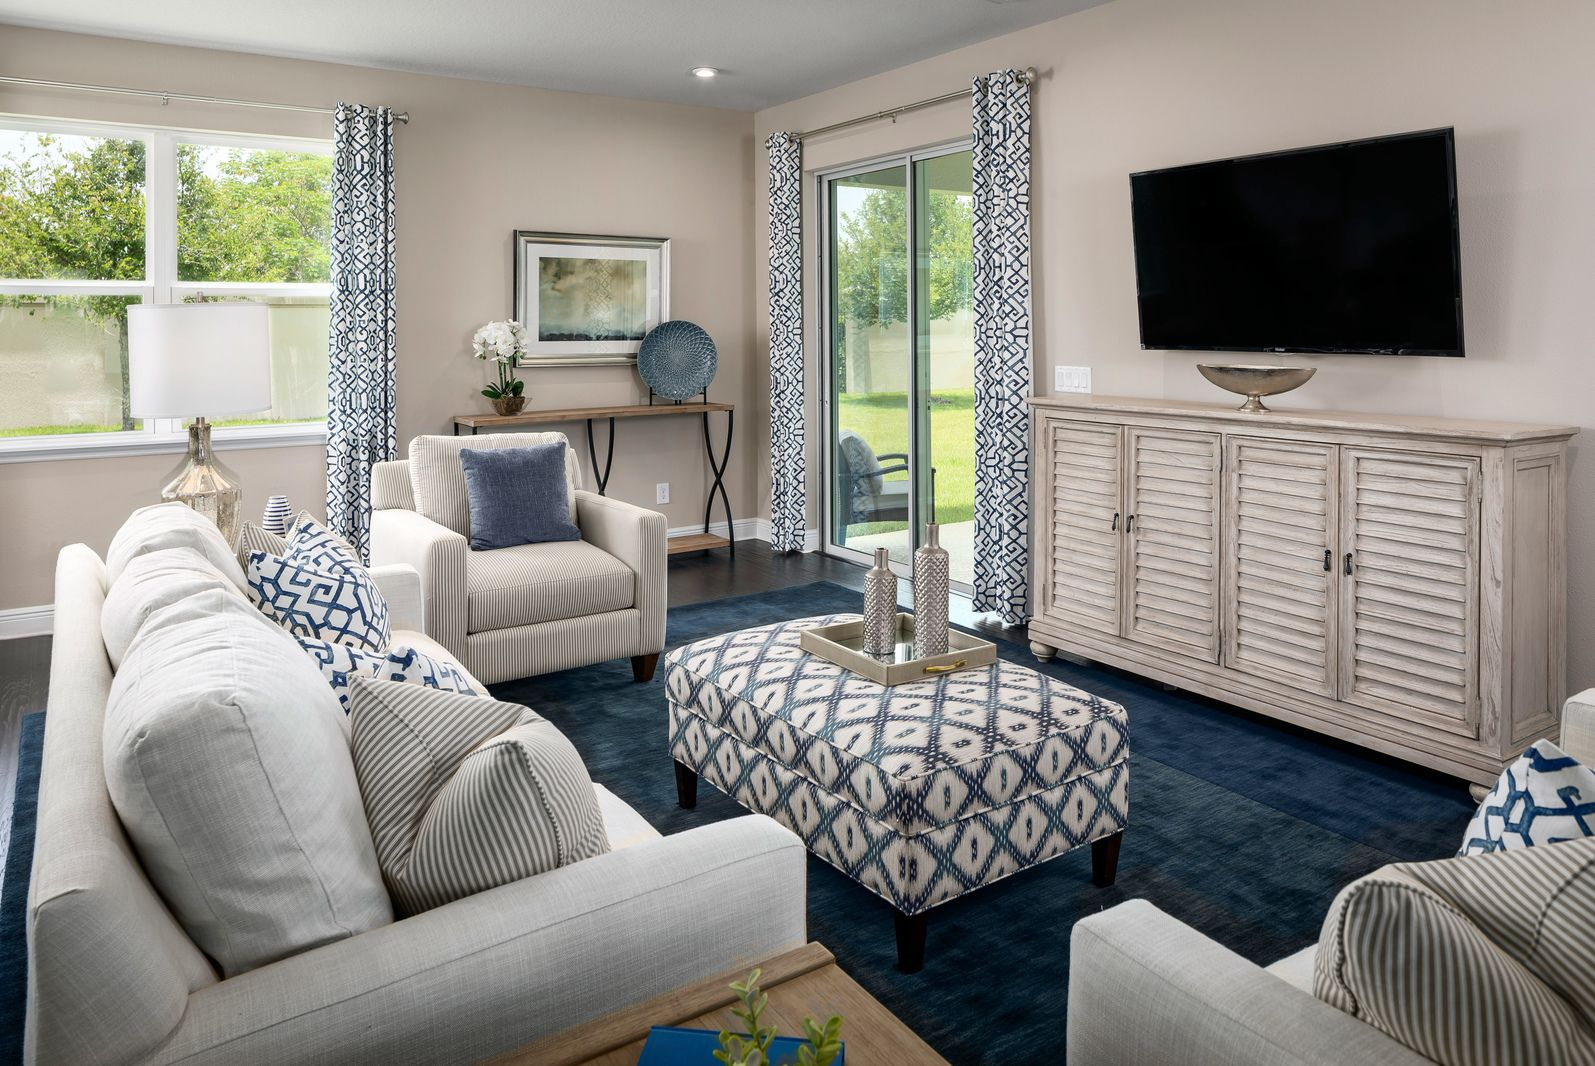 Living Area featured in the Estero Bay By Ryan Homes in Tampa-St. Petersburg, FL